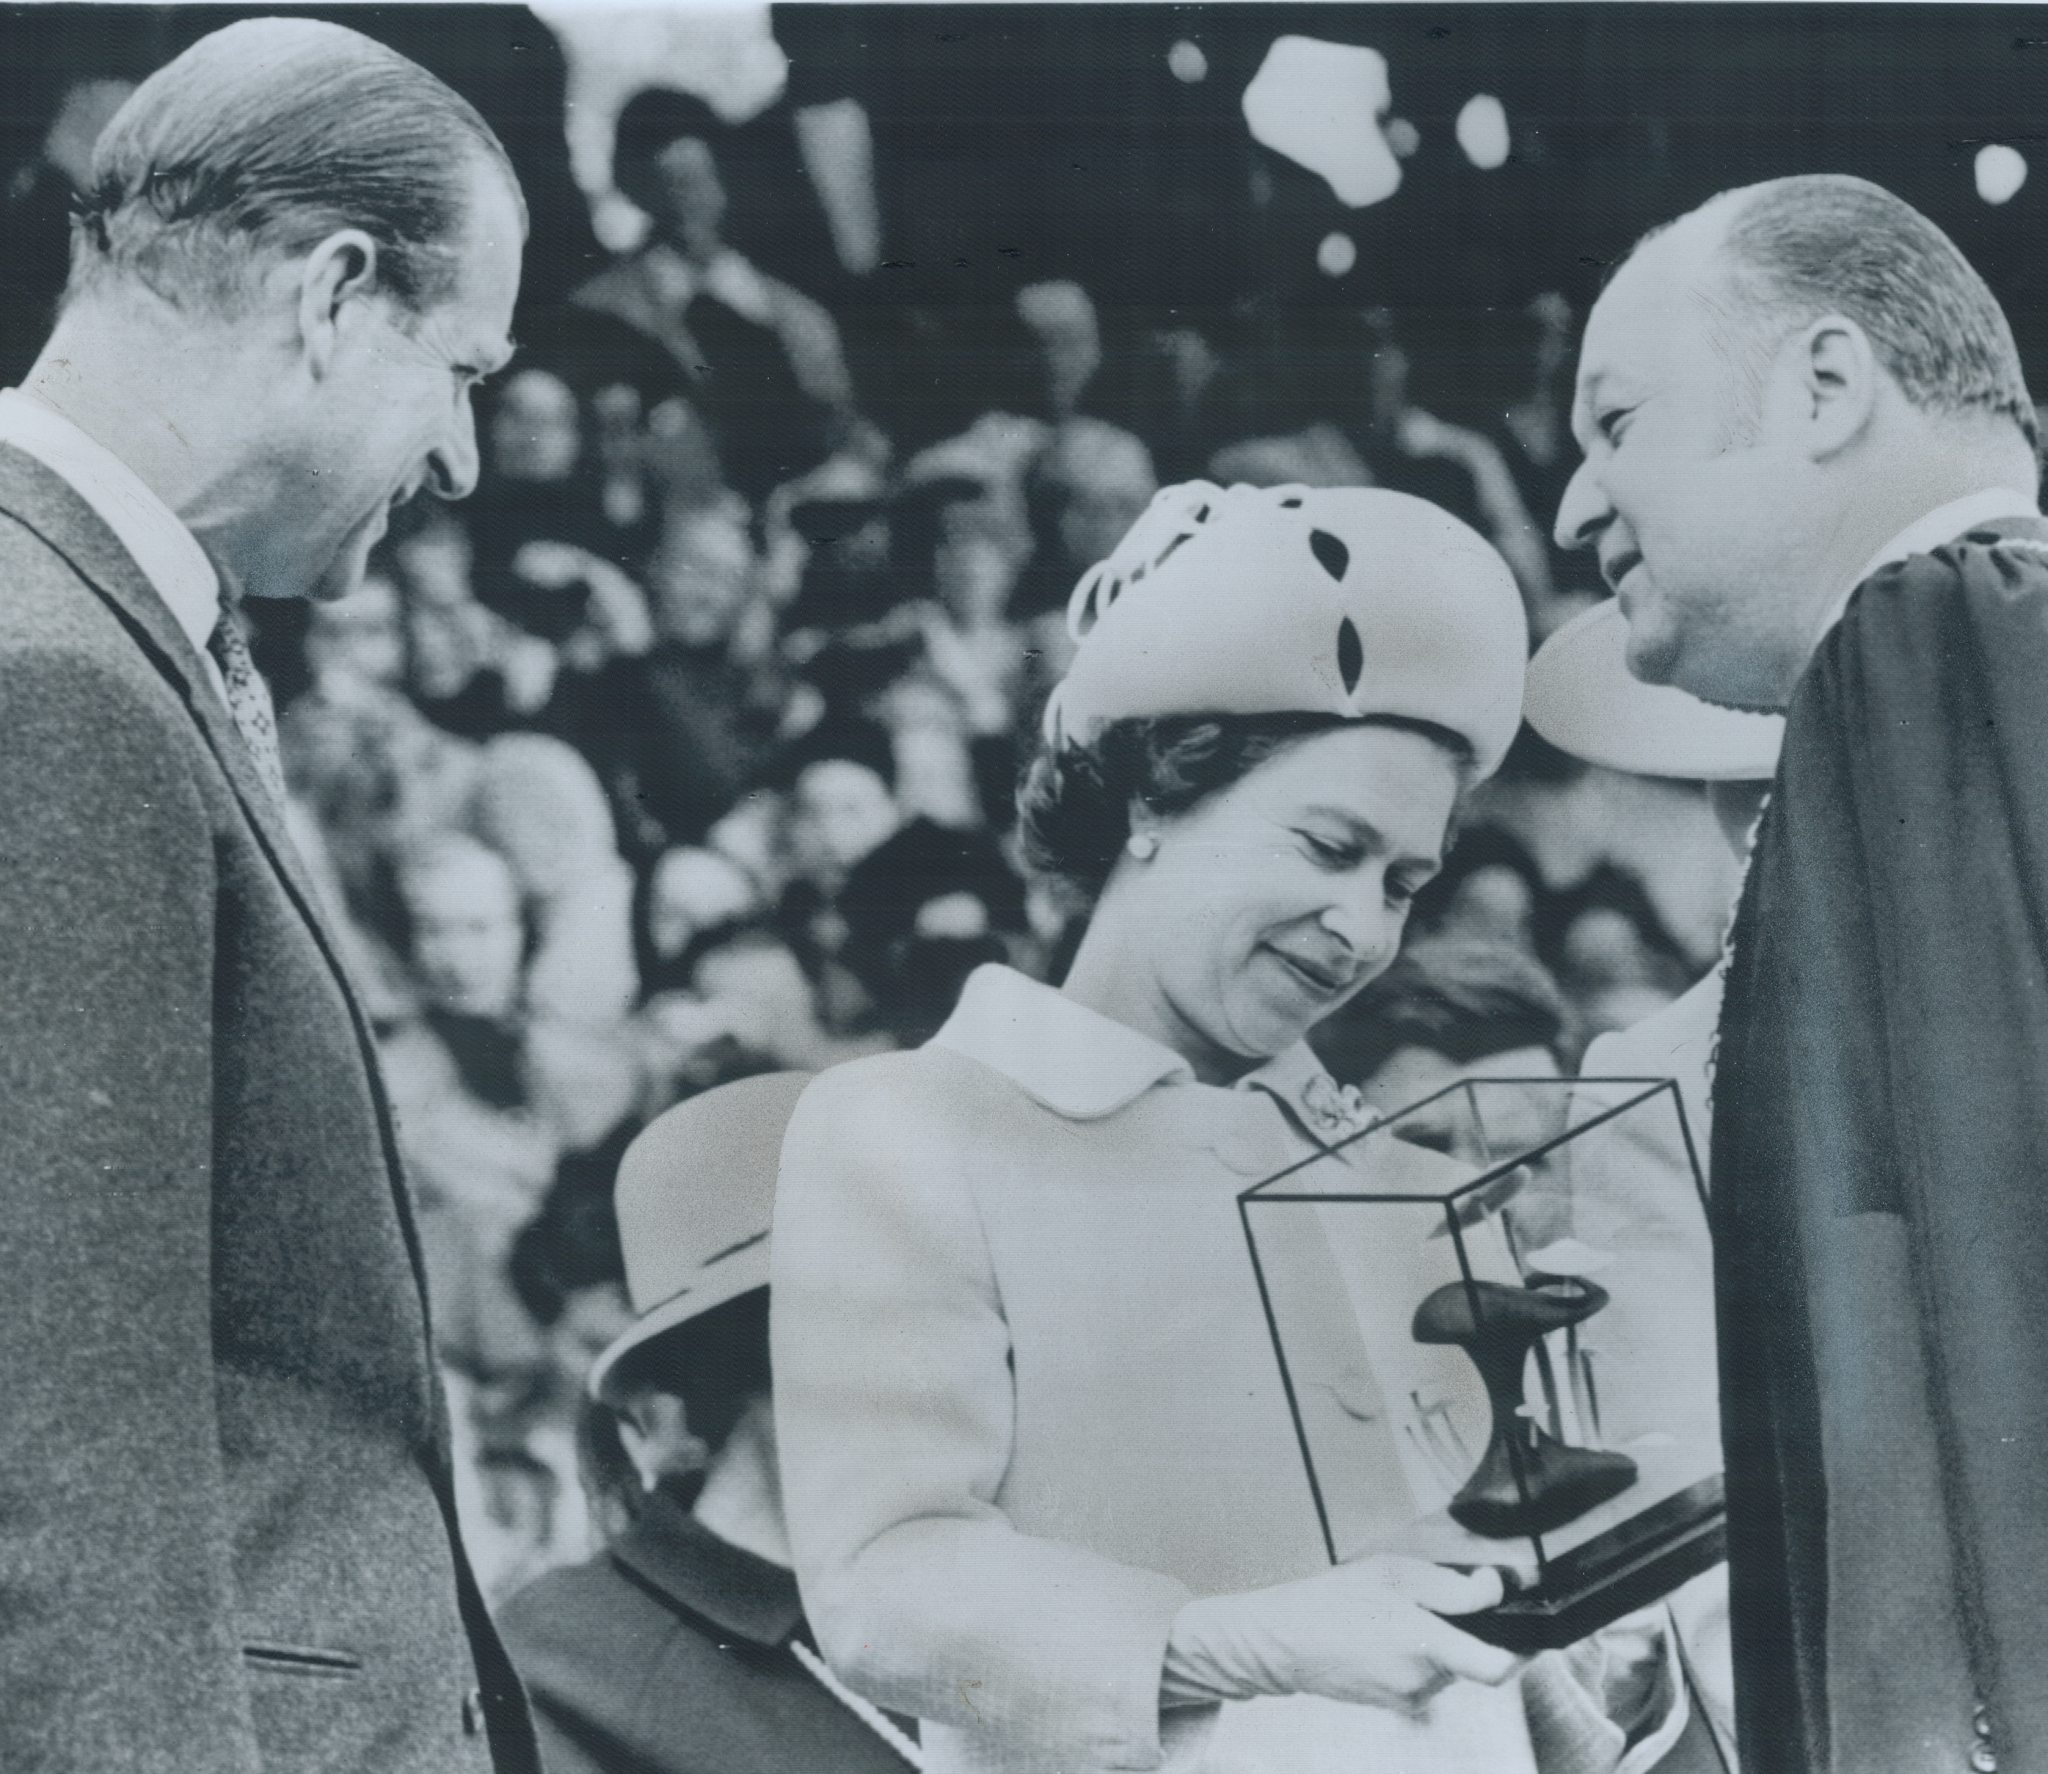 May 6, 1971: Queen Elizabeth II and Prince Philip admire a glass-enclosed sculpture presented to them by Mayor Hilbert Roth (right) during their visit in Kelowna, B.C.